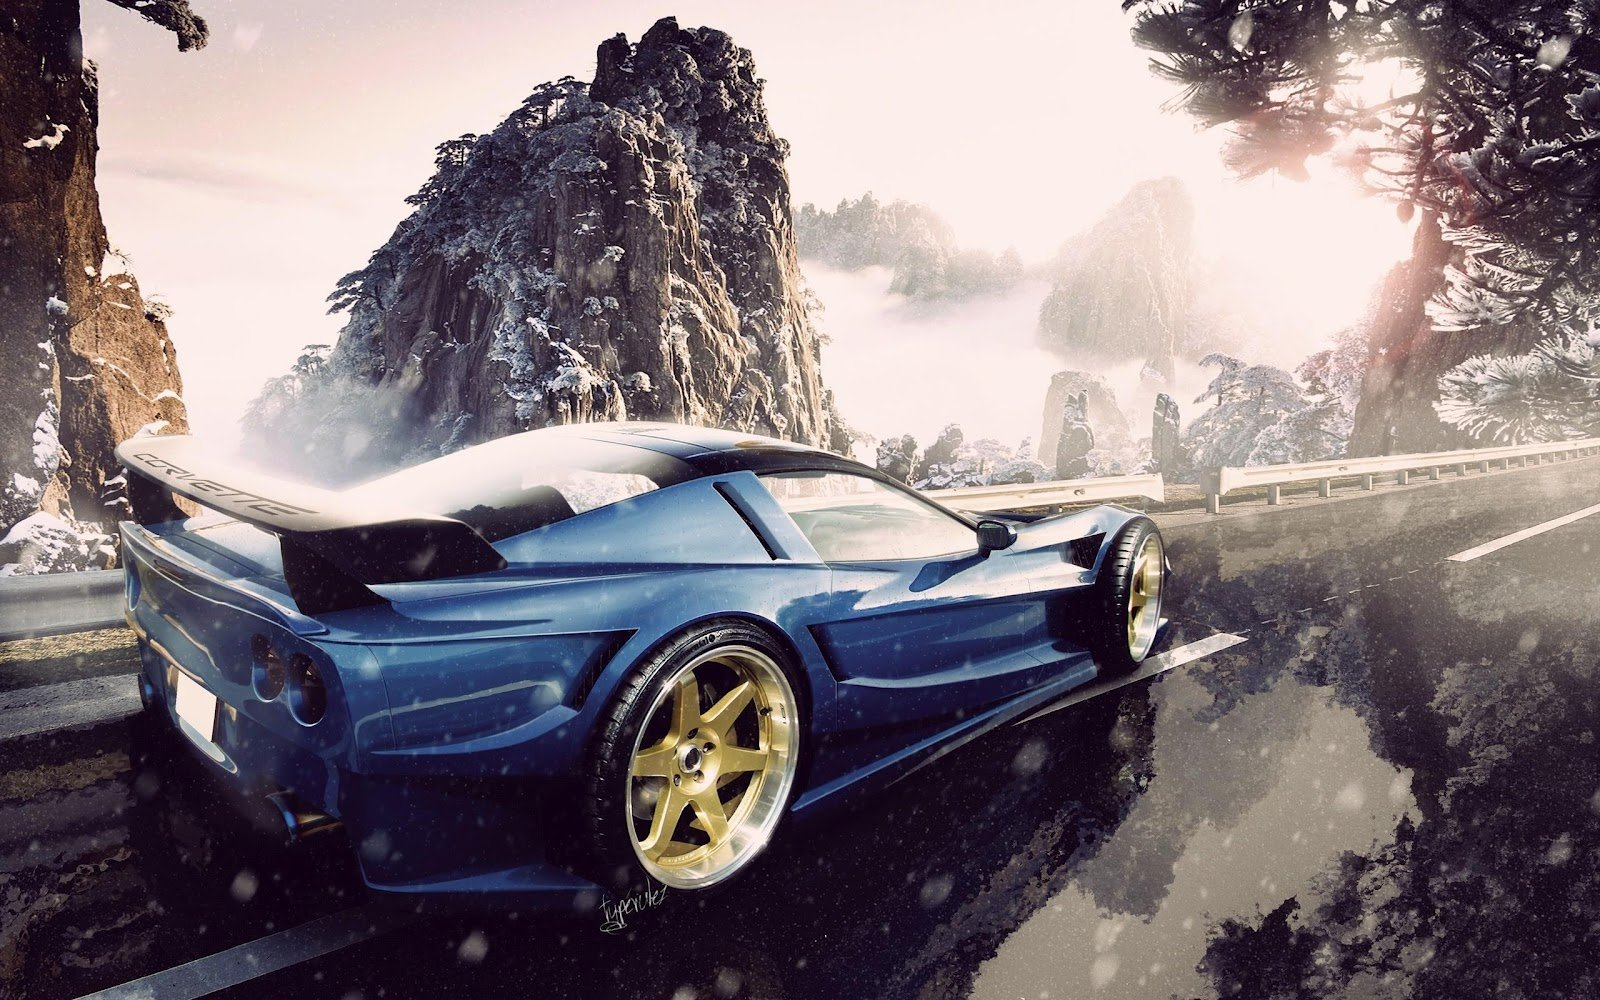 cars wallpapers desktop hd cars wallpapers desktop hd cars wallpapers 1600x1000